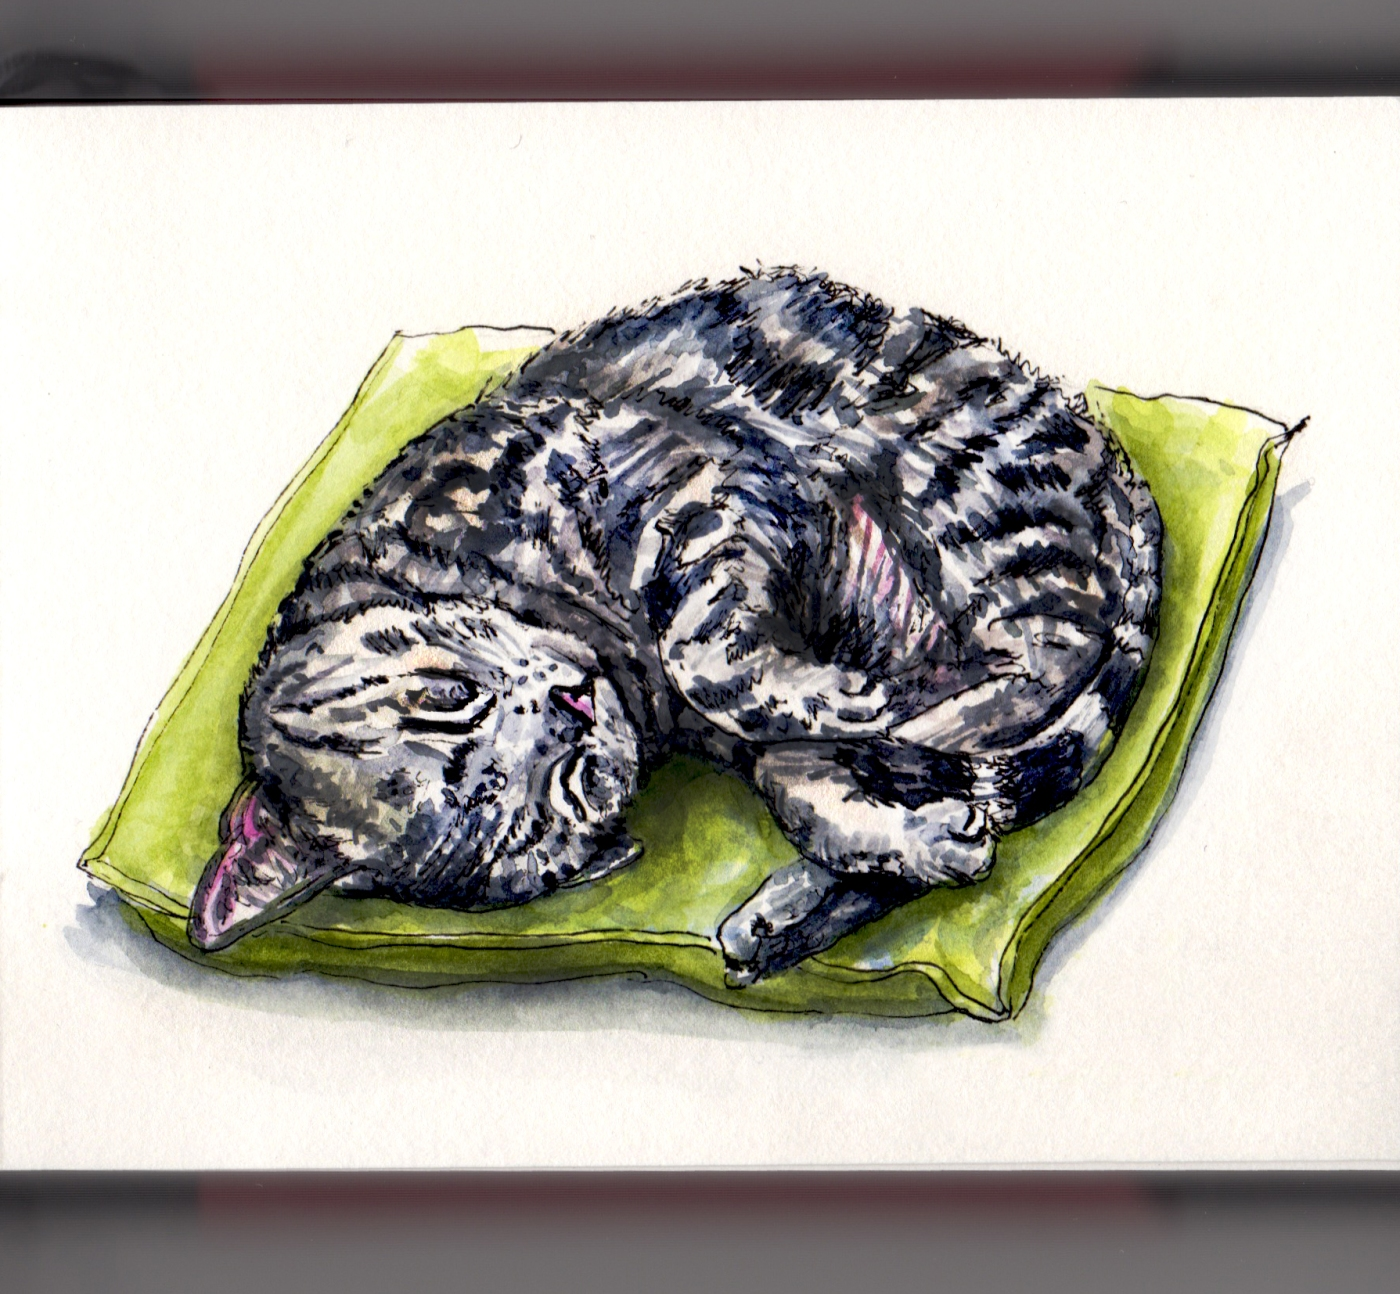 Day 19 - #WorldWatercolorGroup Sleeping In Cat Sleeping on a Tiny Green Pillow